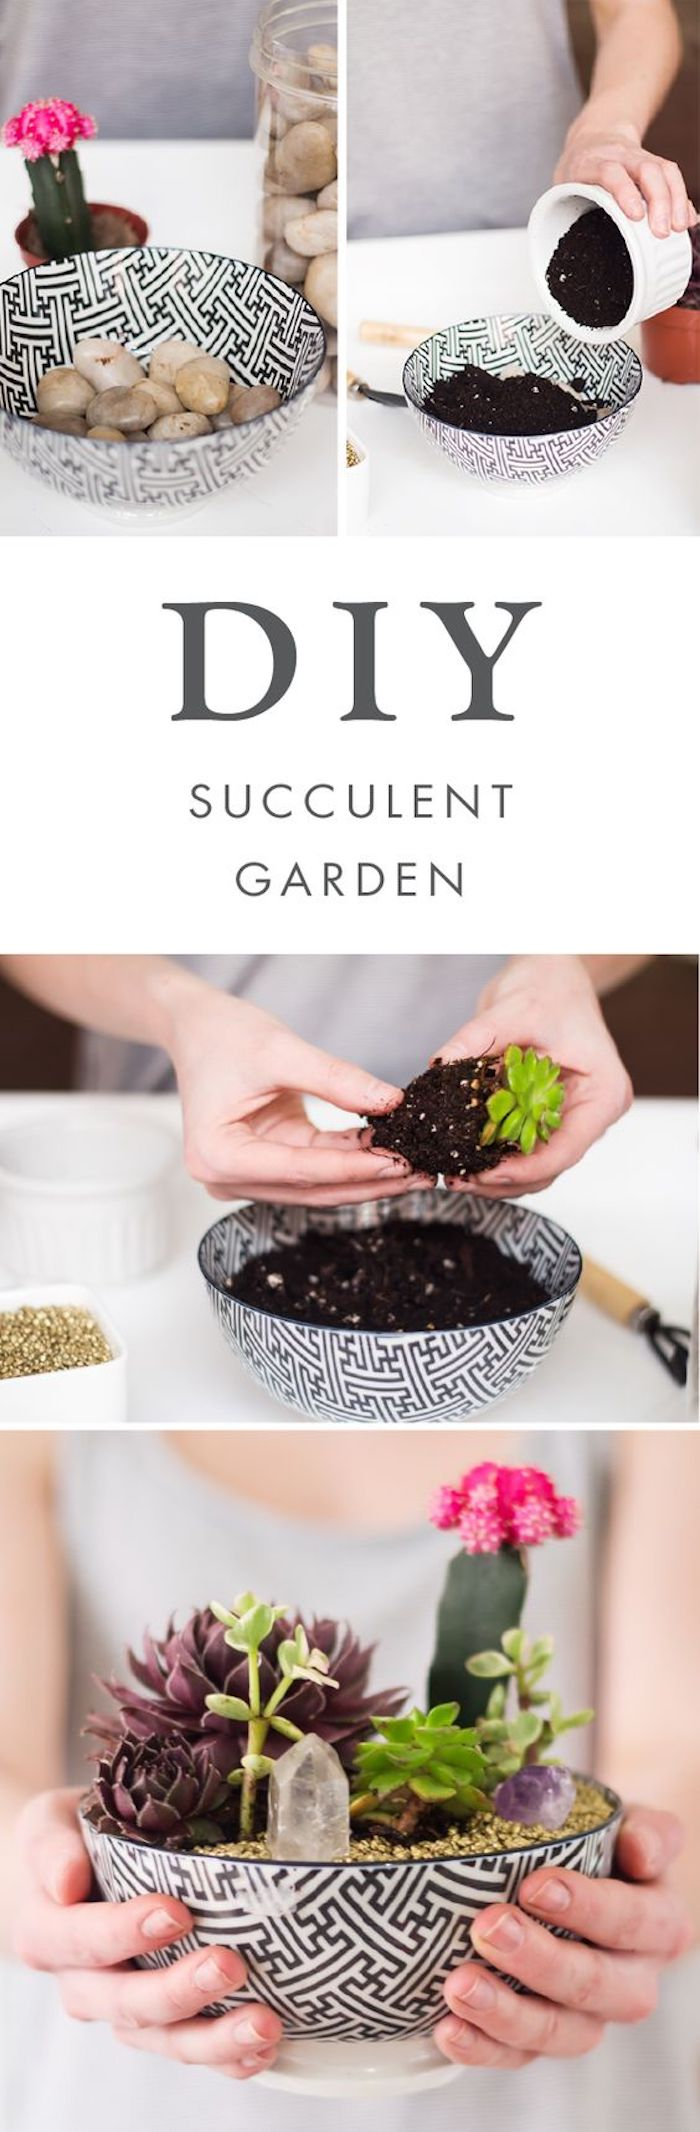 diy succulent garden, cool diy projects, ceramic bowl, filled with rocks and dirt